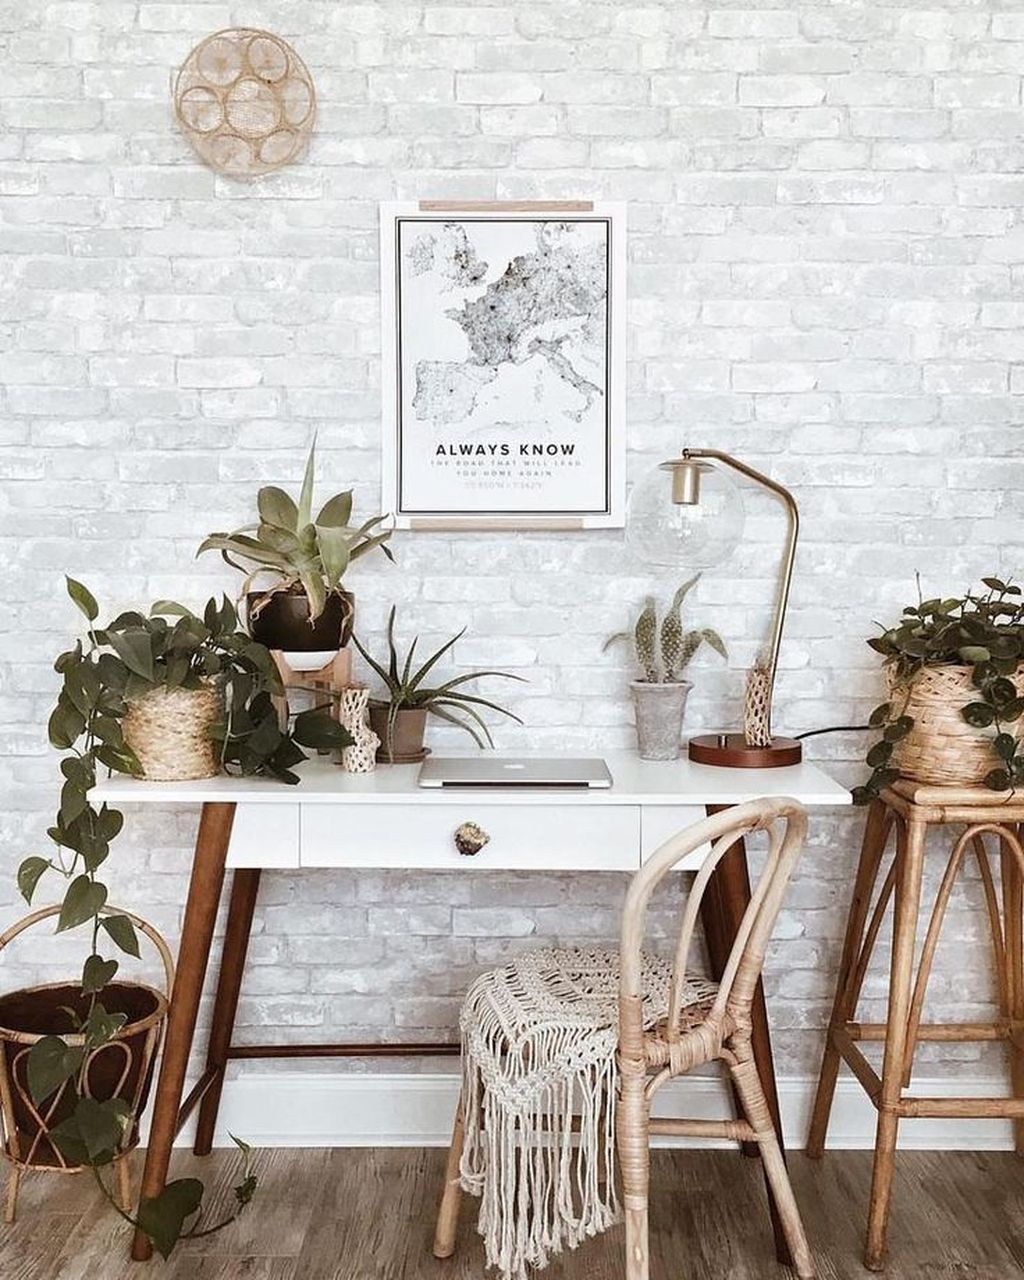 Best Summer Interior Design Ideas To Beautify Your Home 35